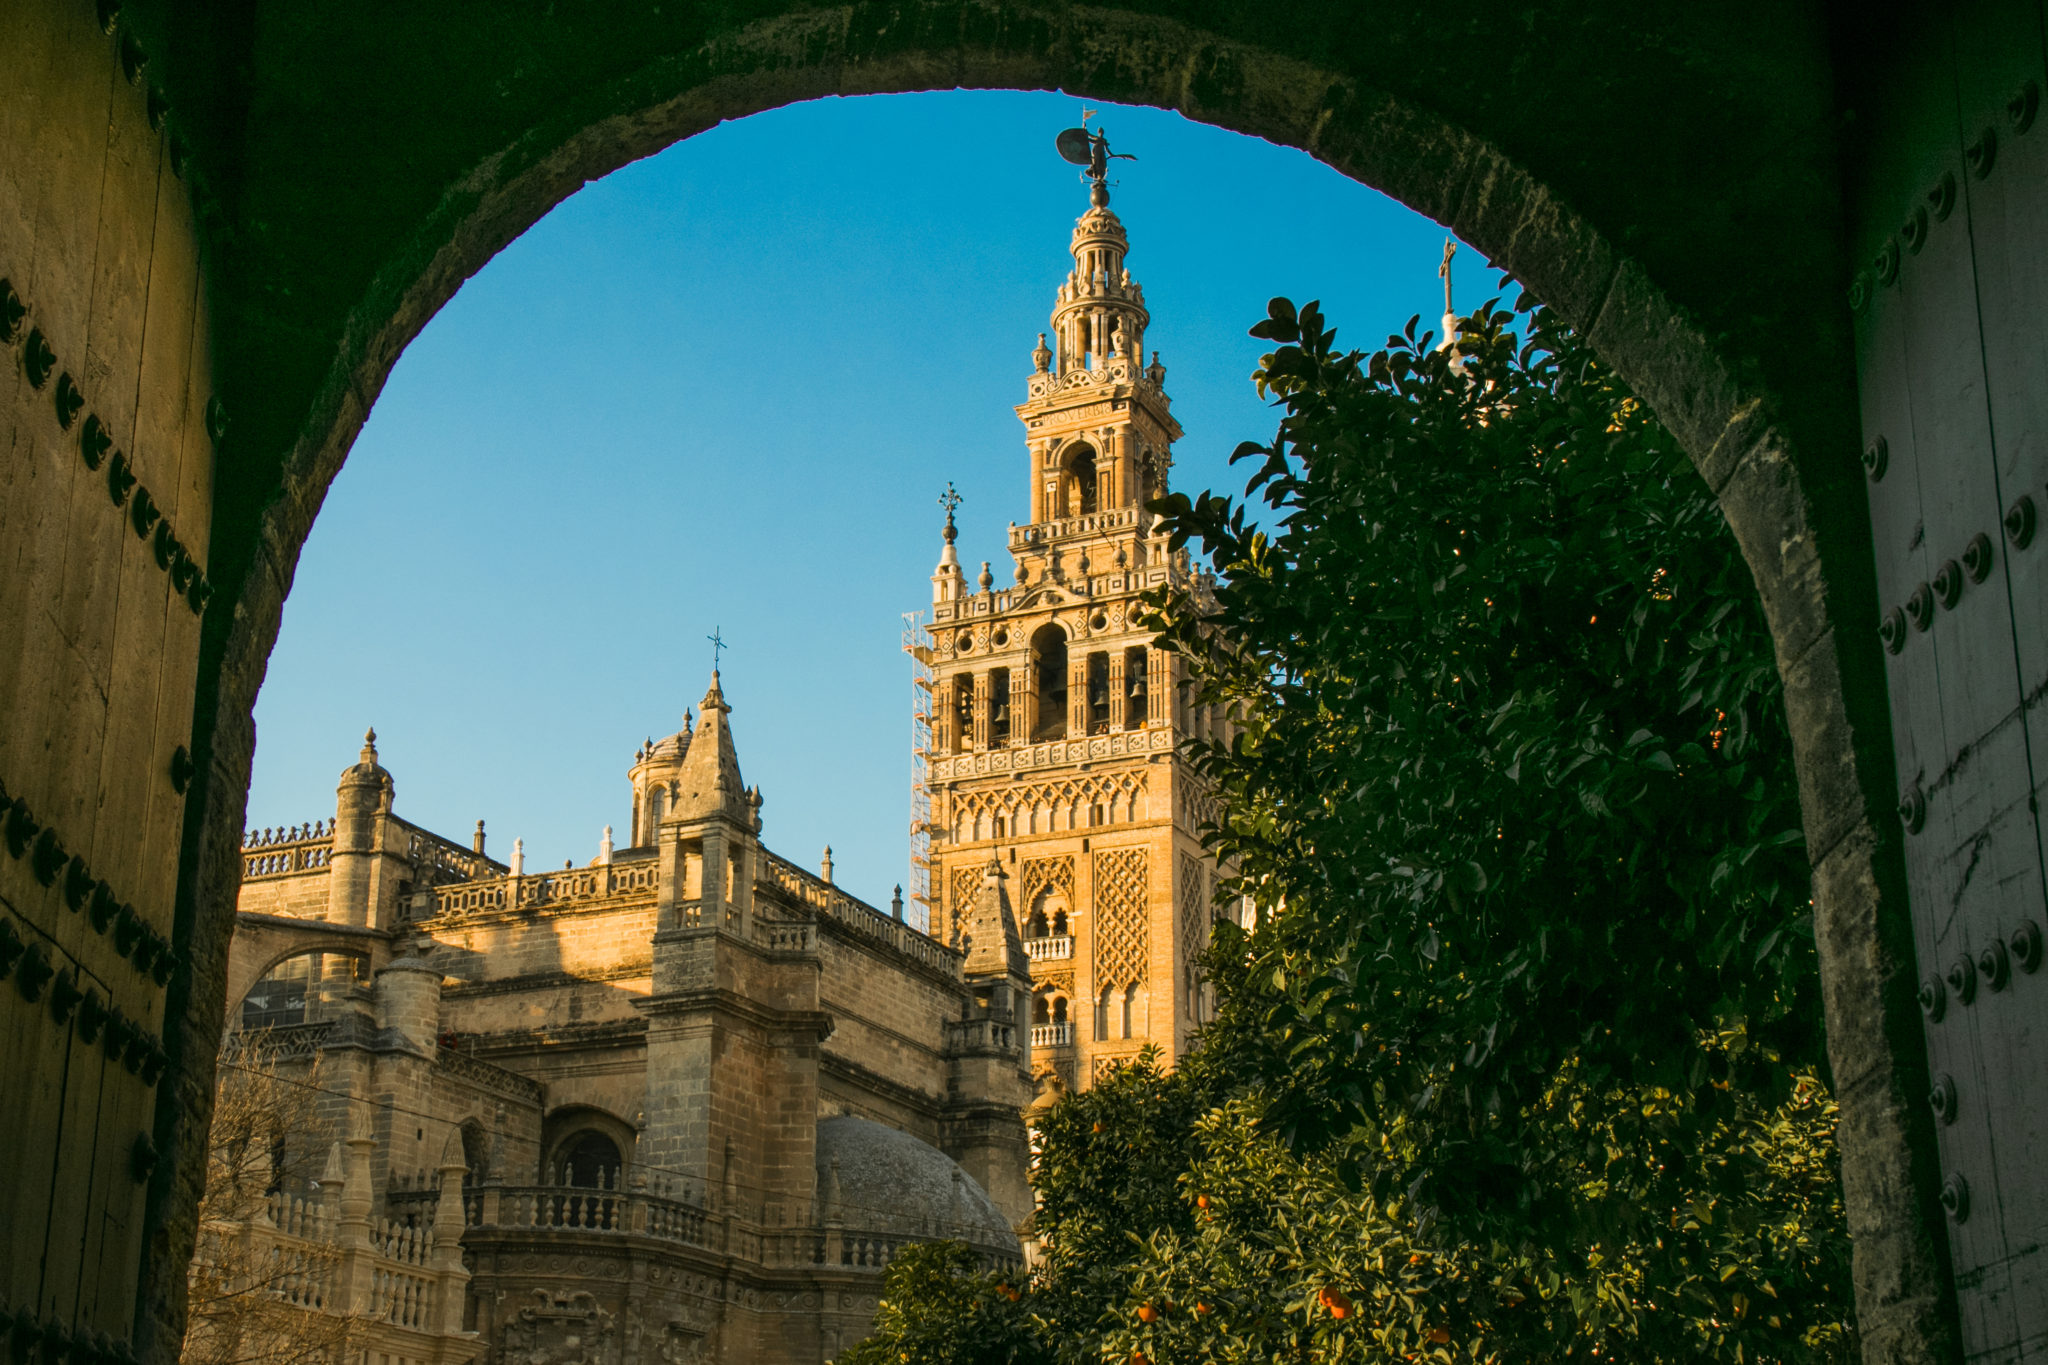 La Giralda in Seville, Spain, one of the most iconic places in the city